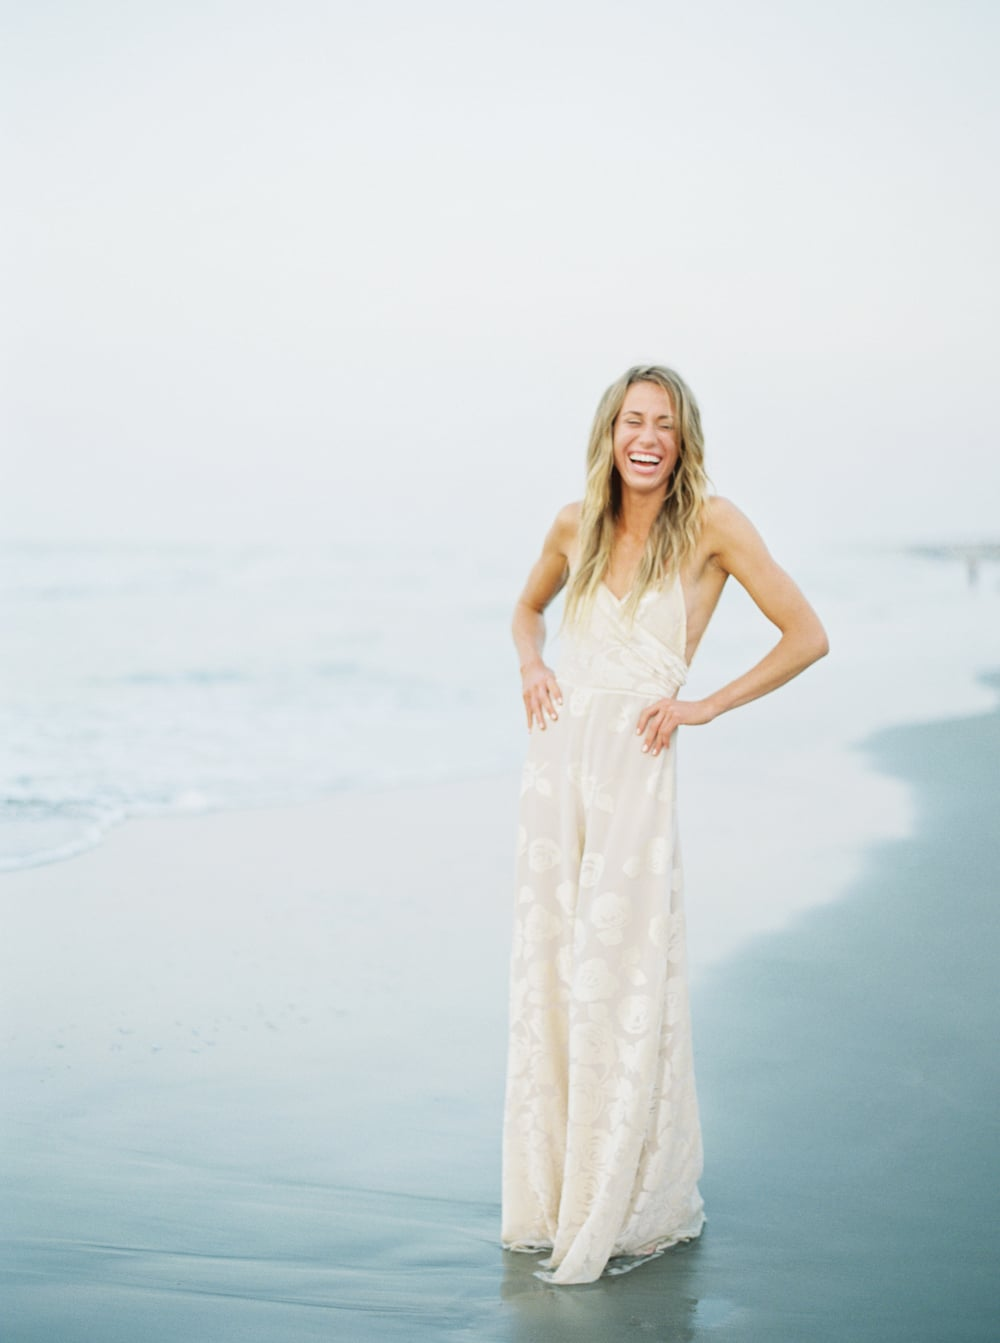 Best Lowcountry Bridal Styles of 2015 - Charleston, Savannah, Hilton Head and Myrtle Beach Weddings